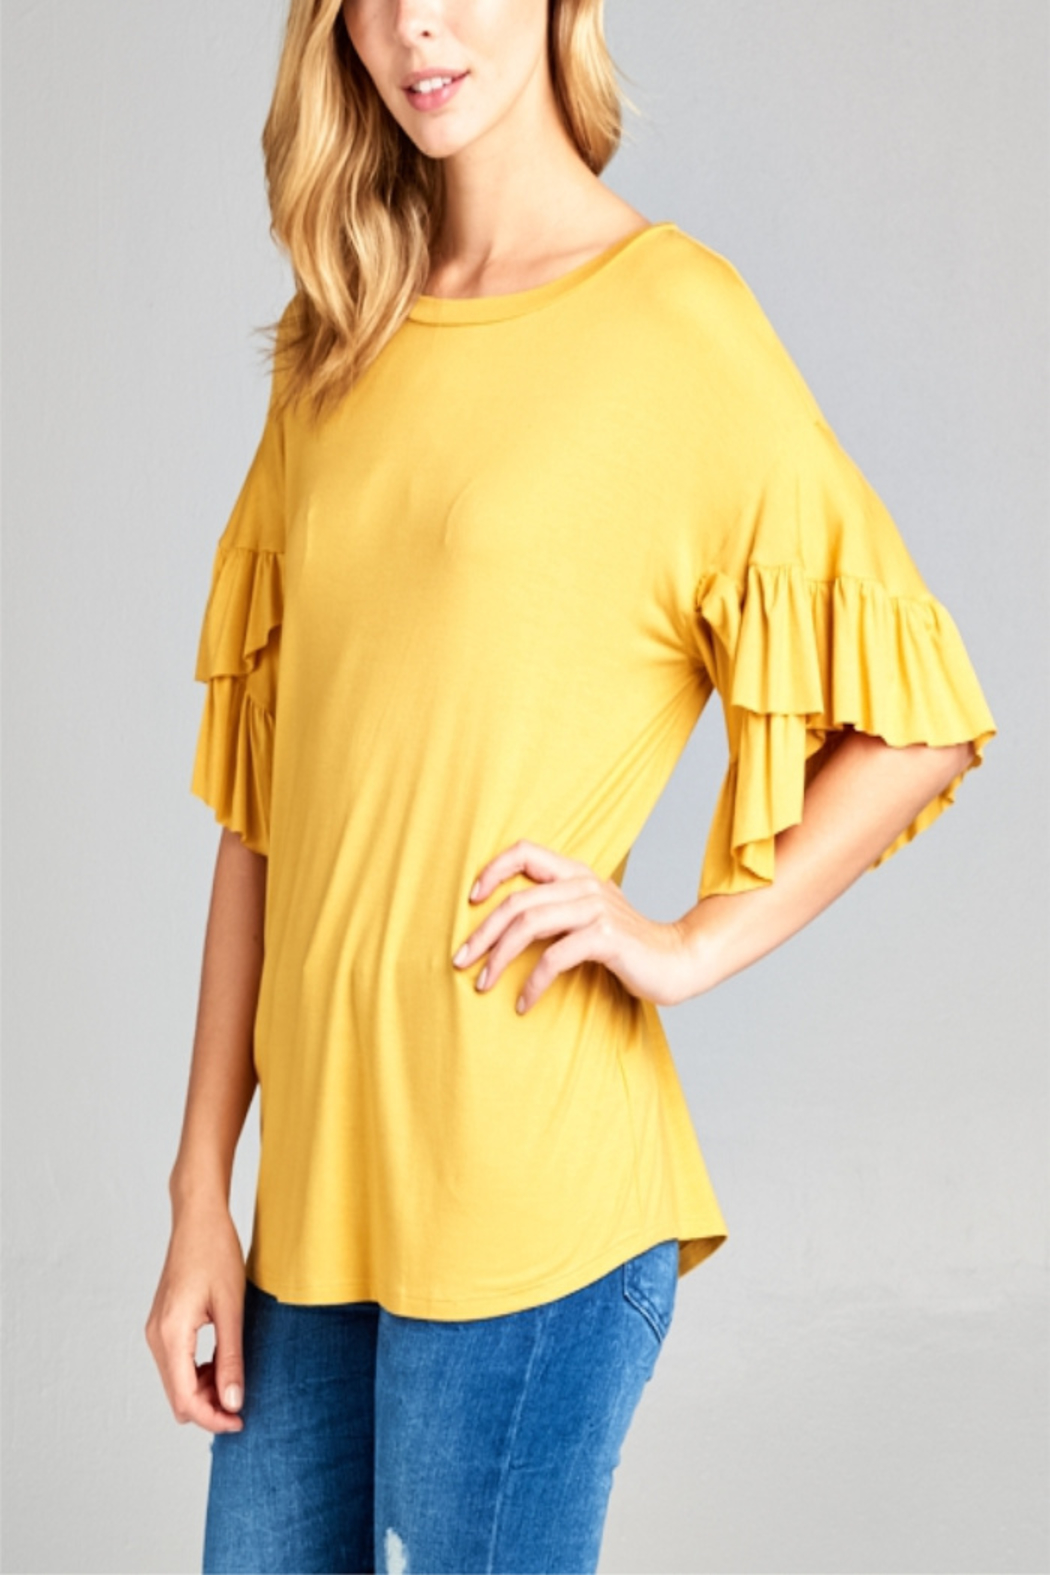 0bc97f6c926ab E Luna Mustard Ruffle Sleeve Top from Indiana by Lyn-Maree s ...